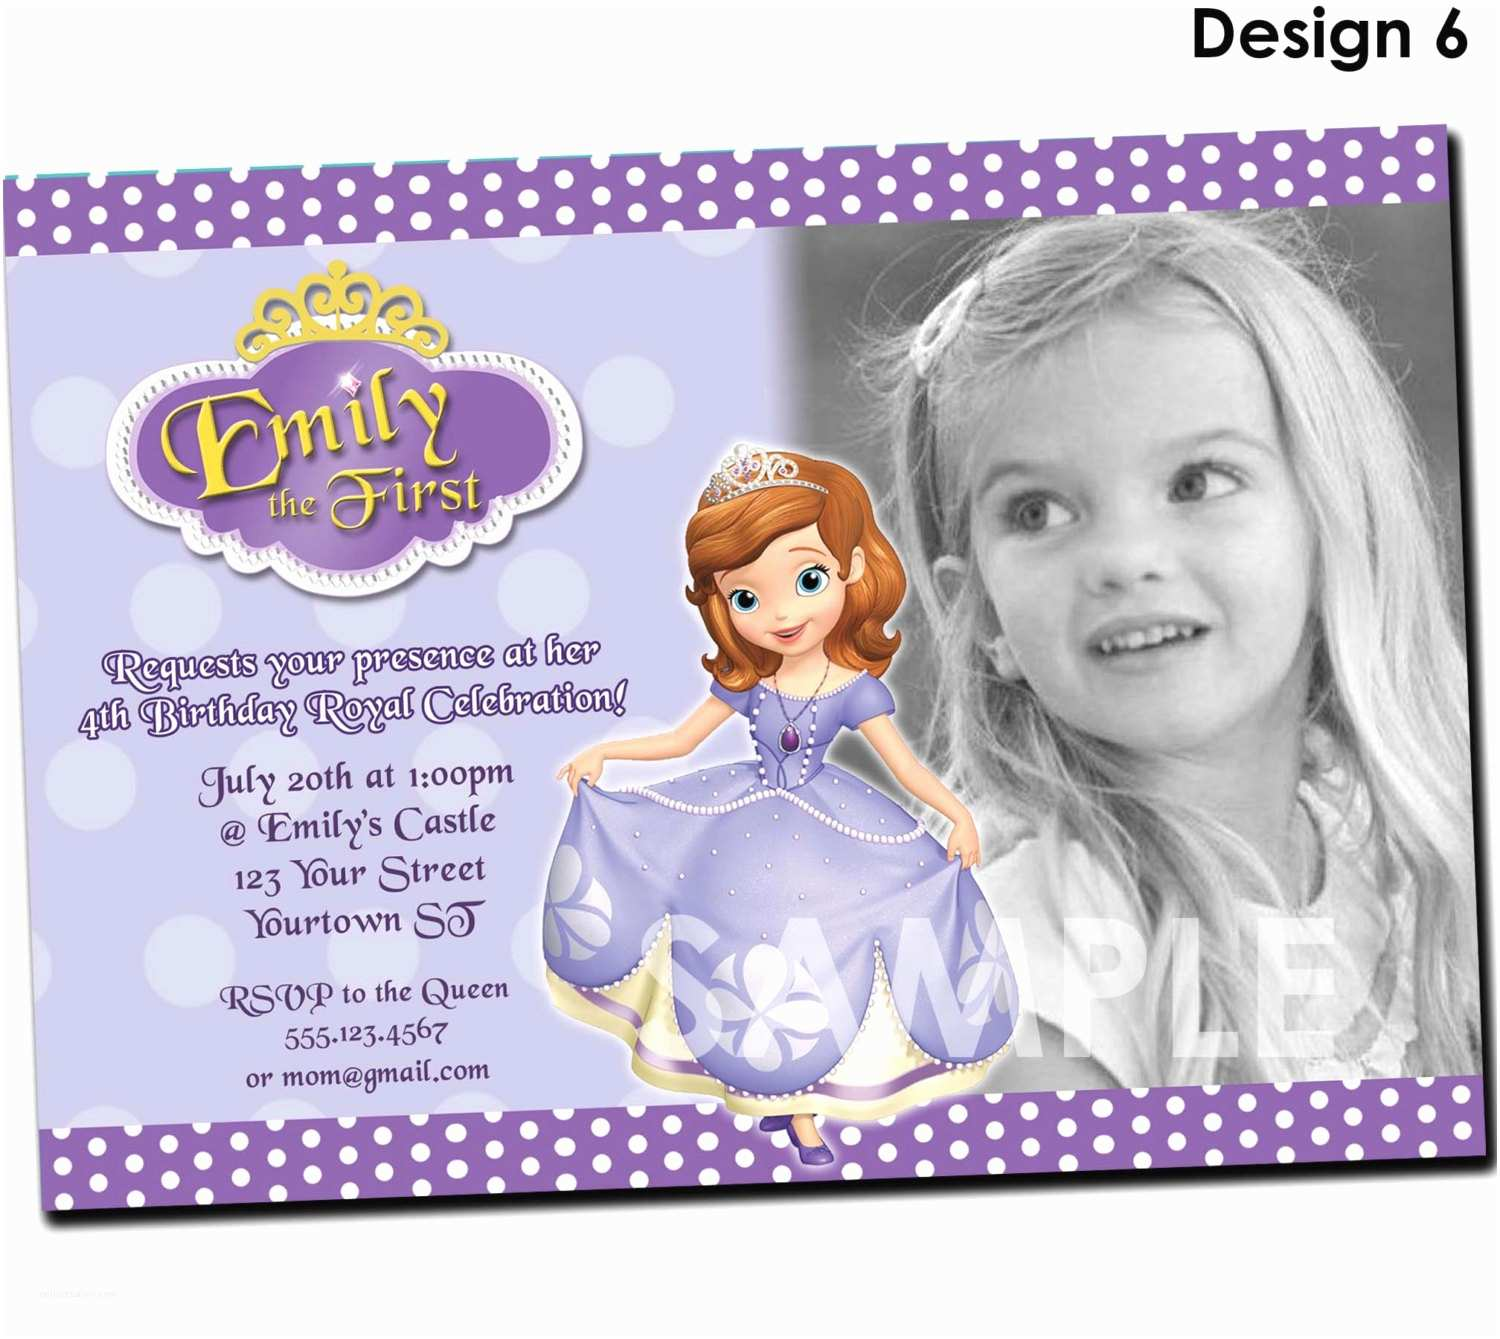 4th Birthday Invitation Wording 4 Impactful Party